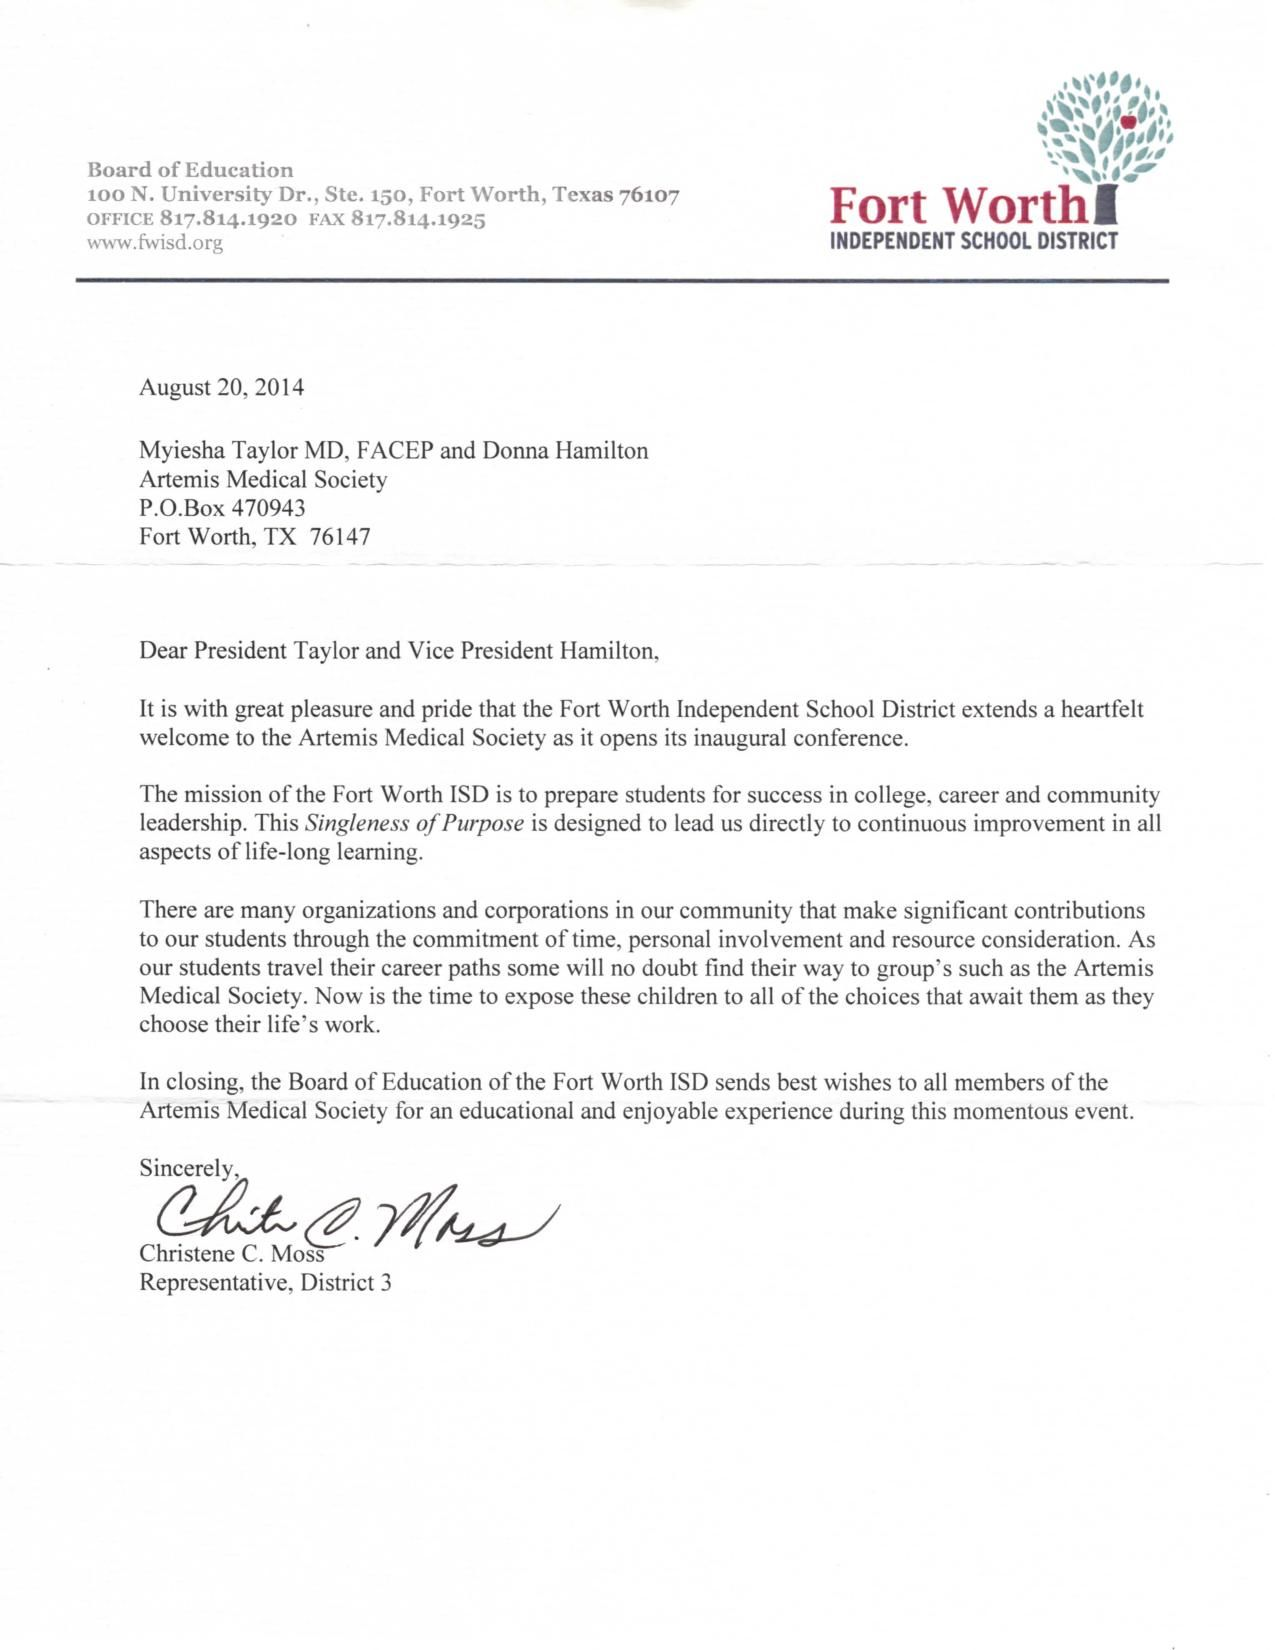 Letter From Fort Worth Independent School